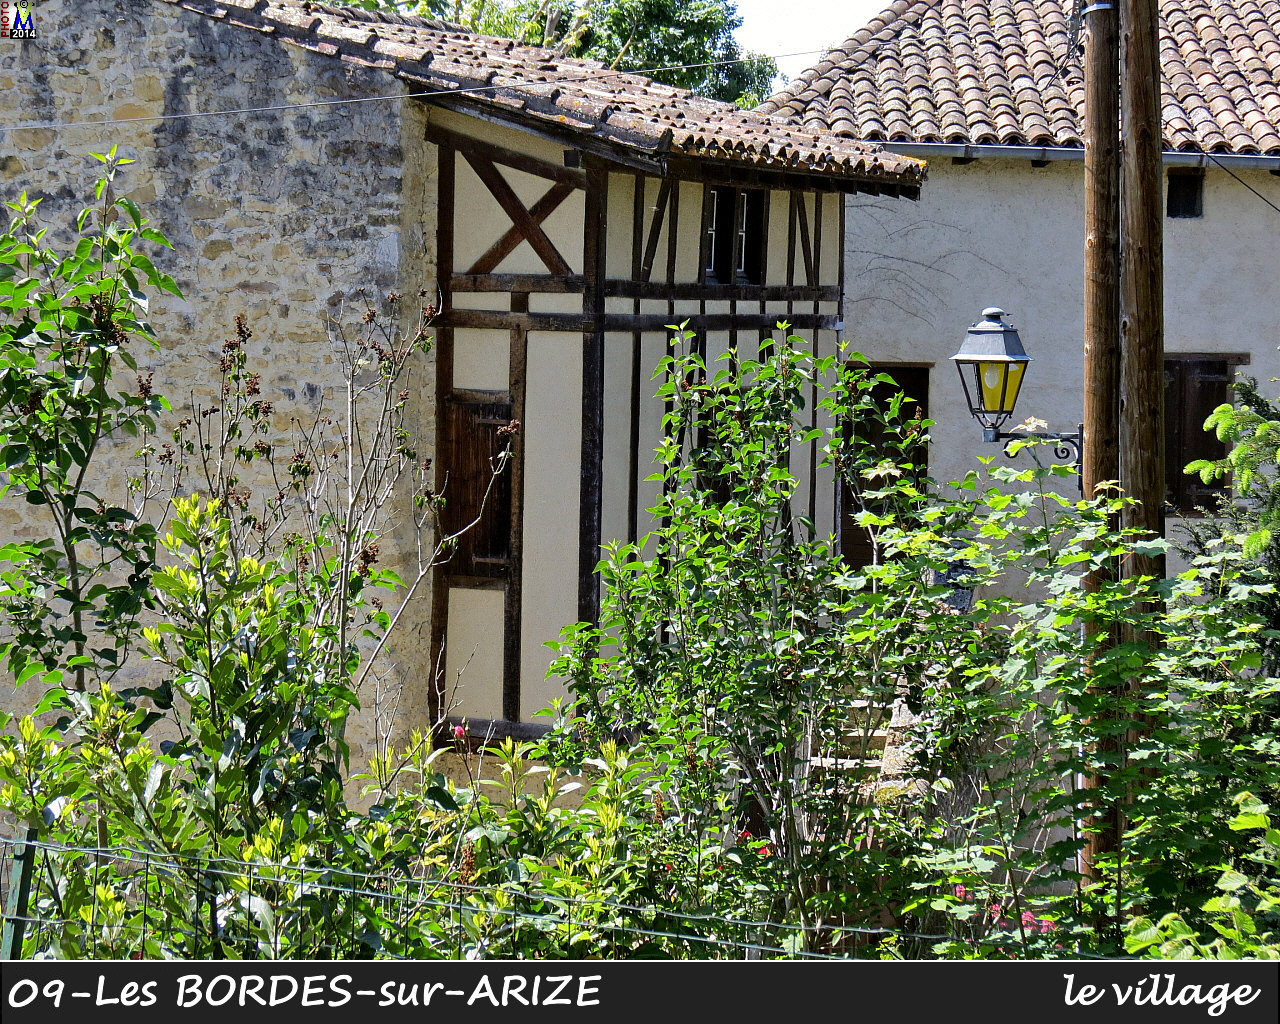 09BORDES-ARIZE_village_122.jpg